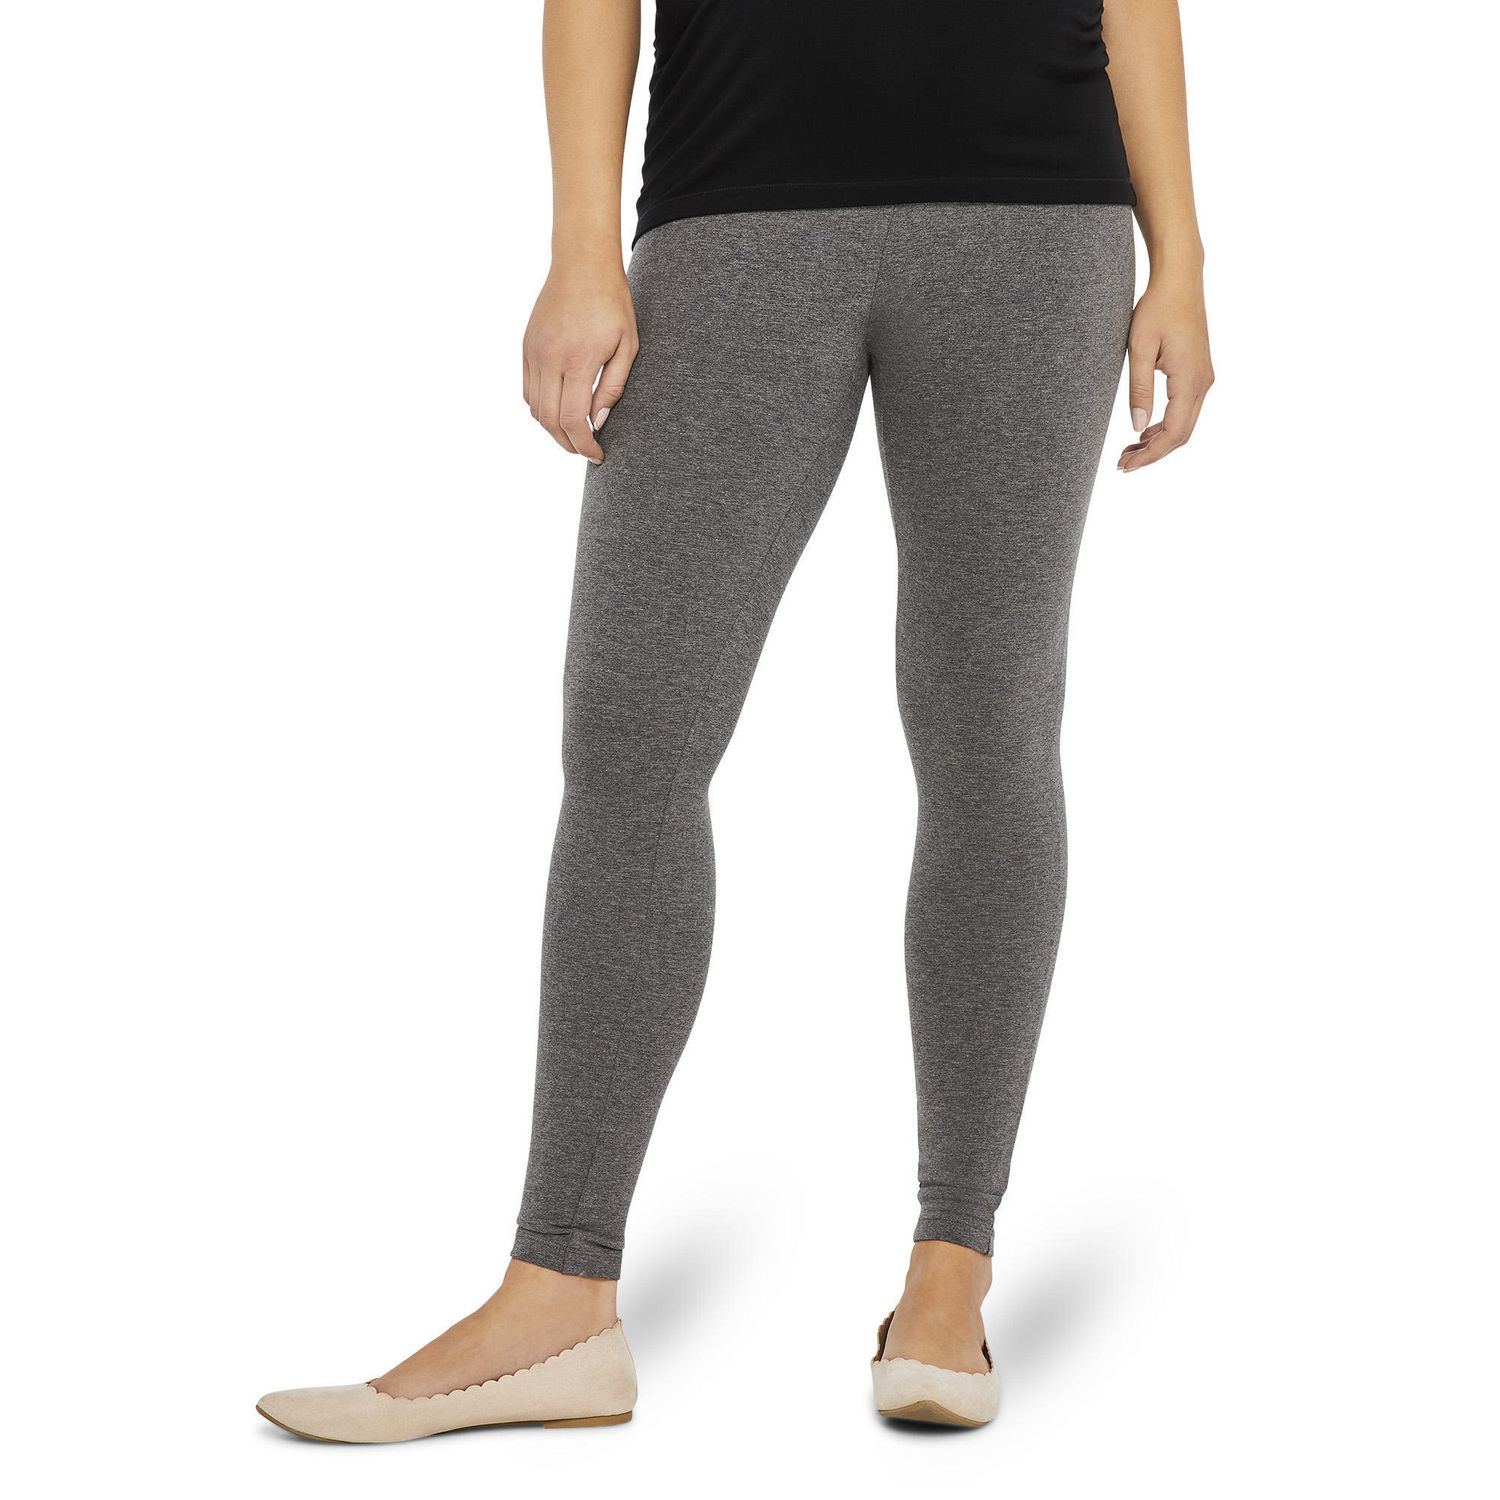 b7e74cbc1 George Maternity Leggings